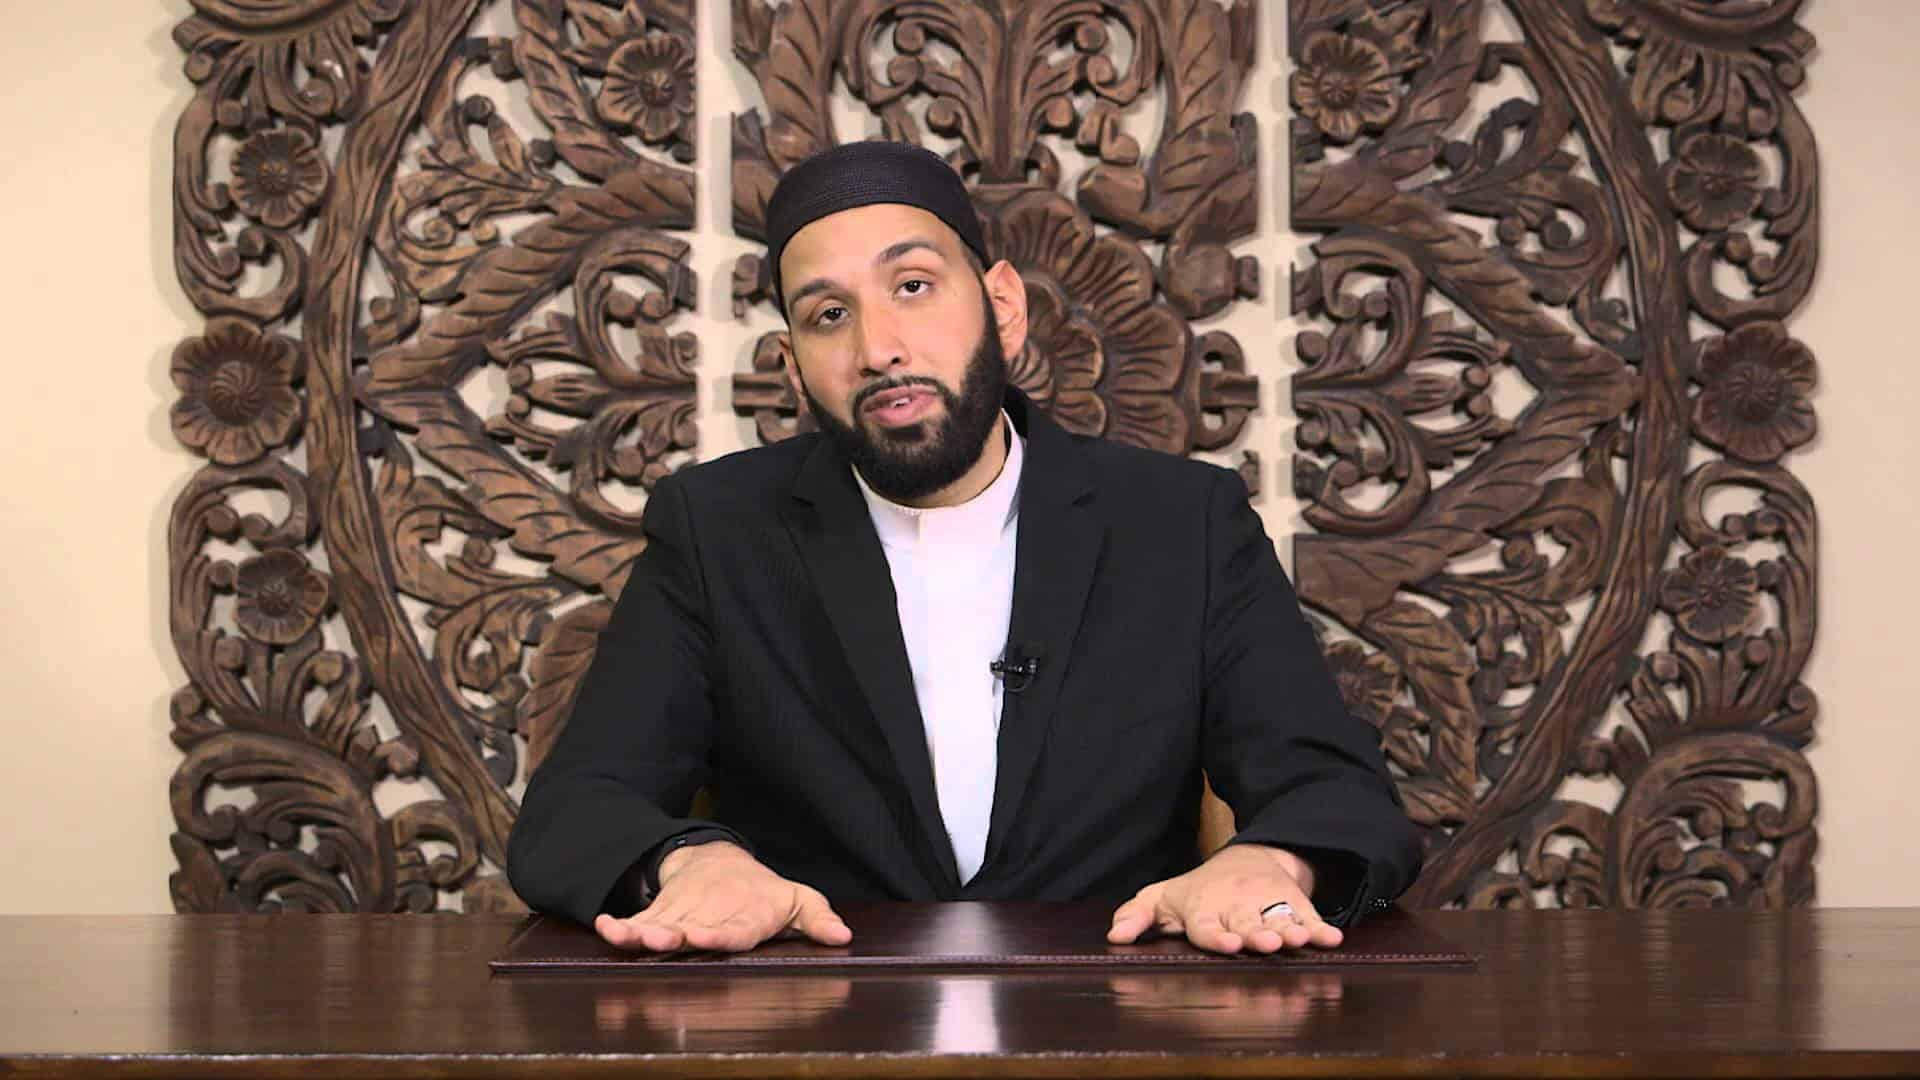 Omar Suleiman –  I'm too Afraid to Wear Hijab or Pray in Public